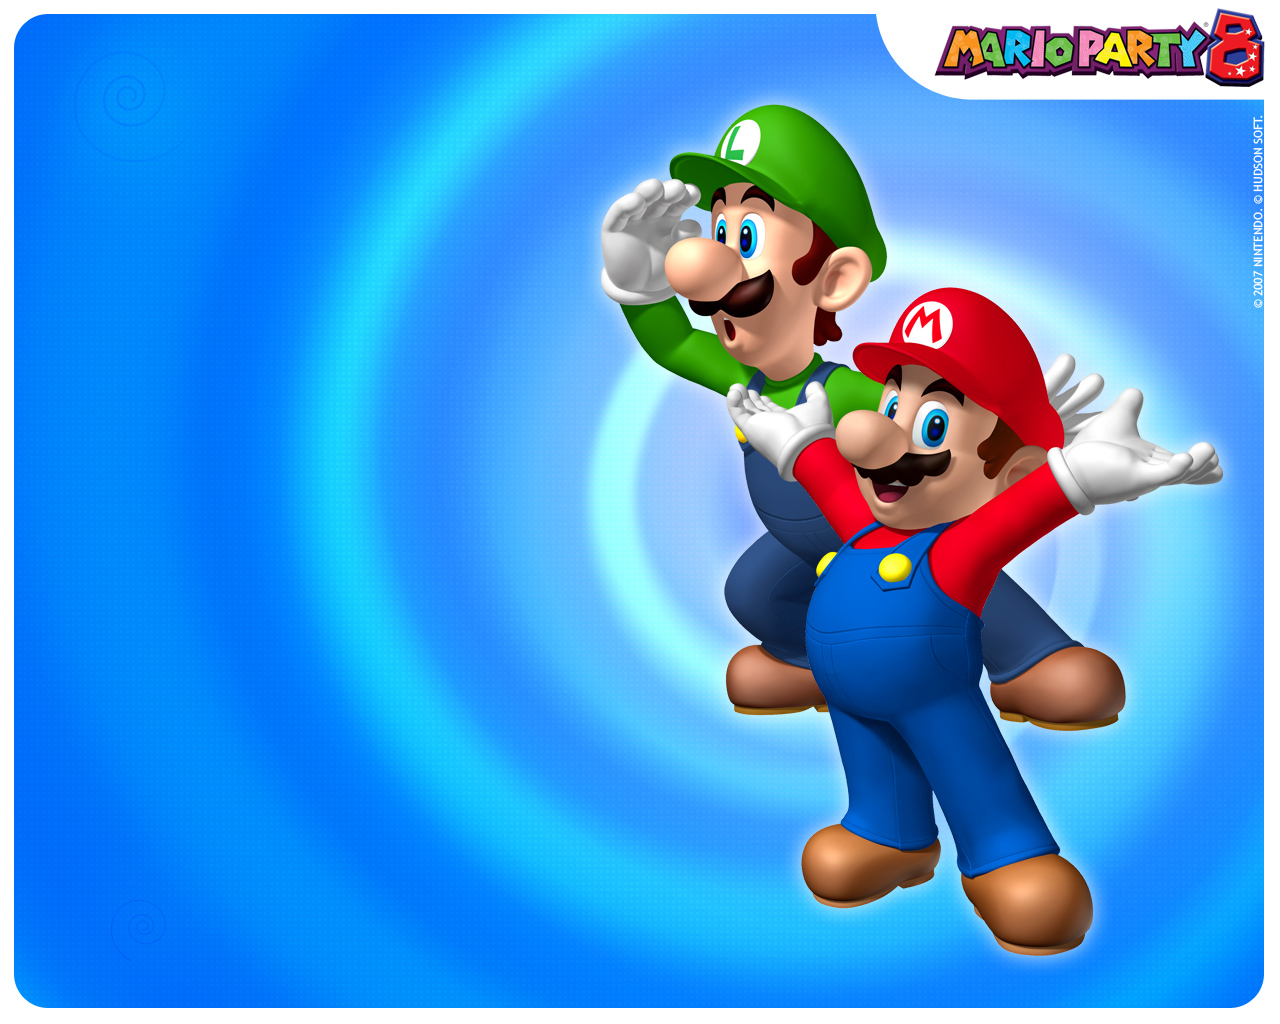 Tmk downloads images wallpaper mario party 8 wii altavistaventures Gallery